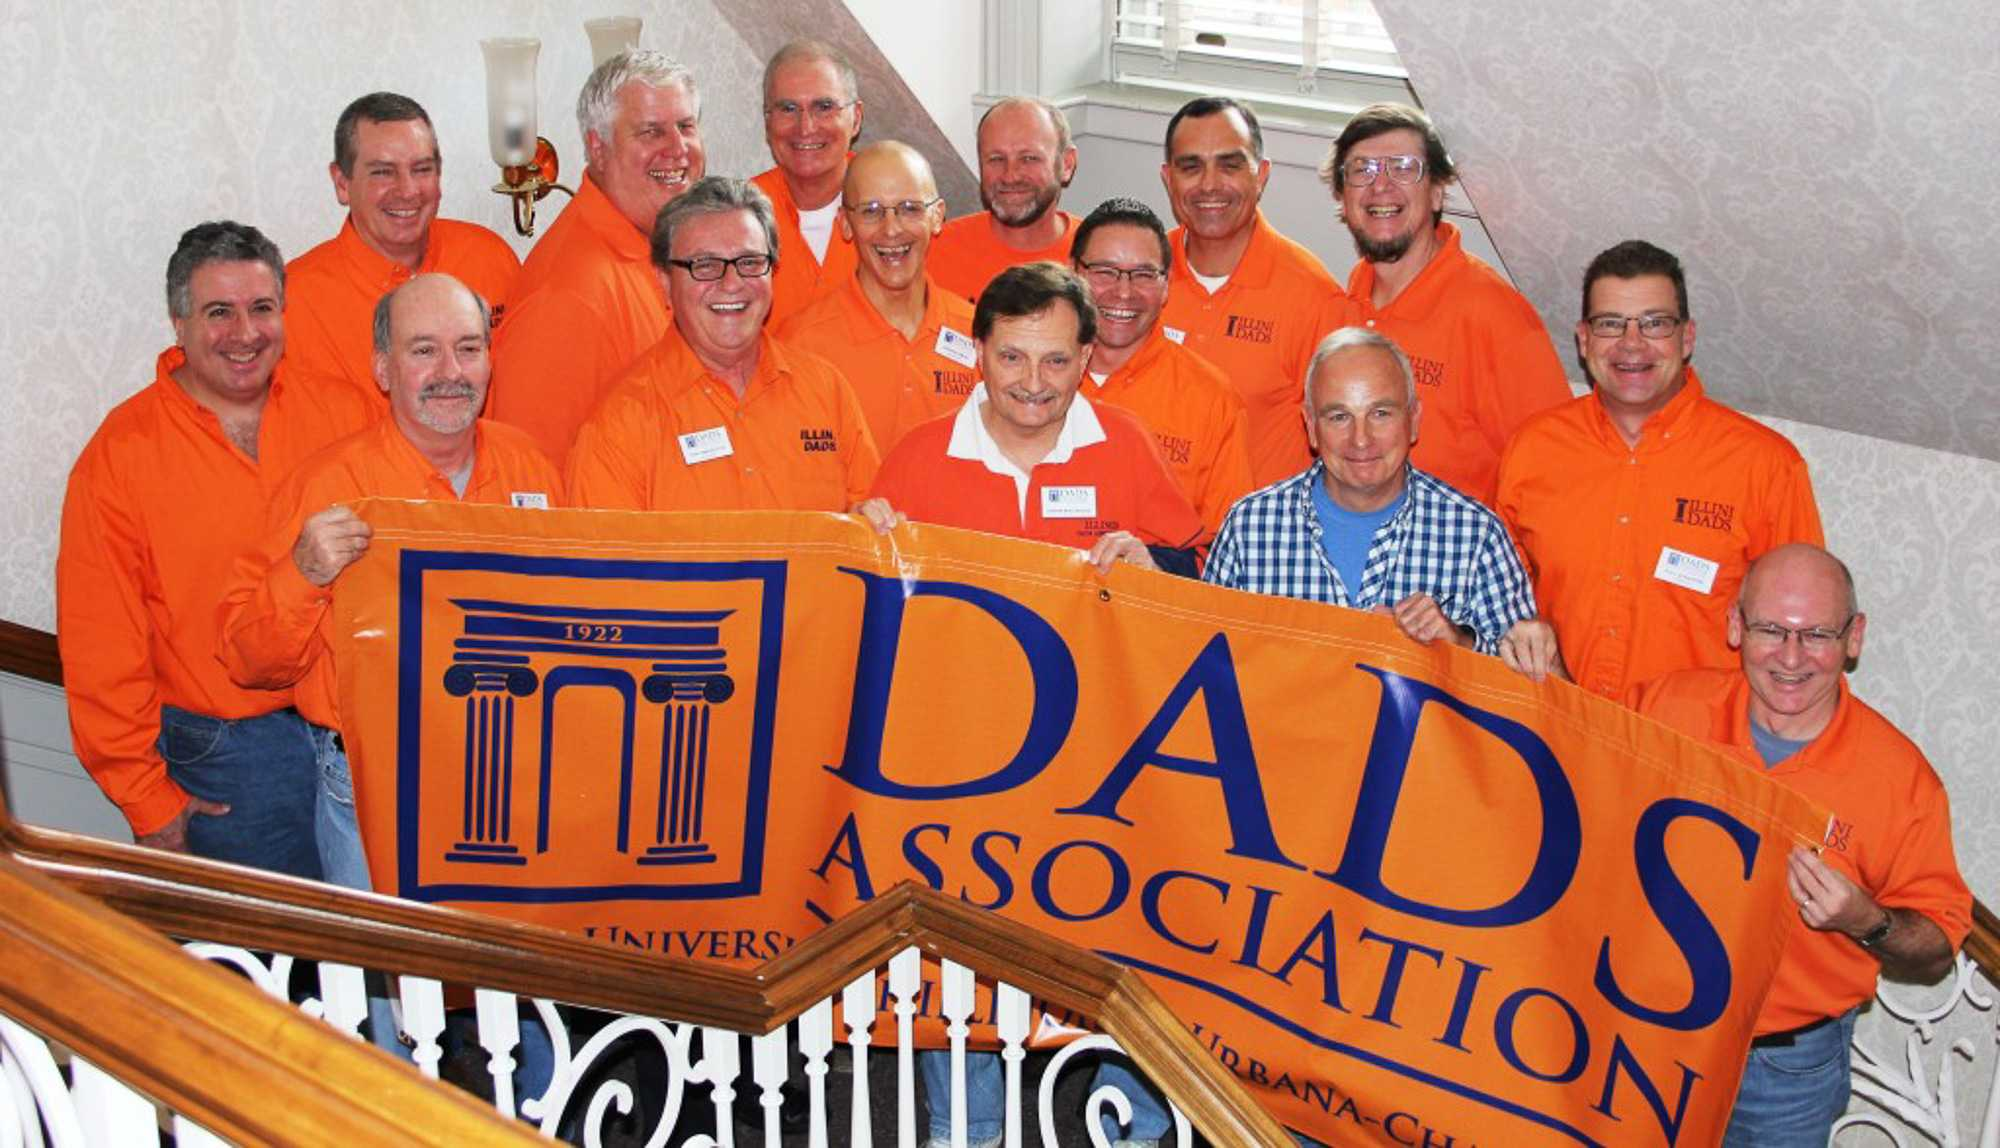 Members of the Board of Directors of the Dads Association. The Dads Association plans a majority of the events for Dads Weekend every year.